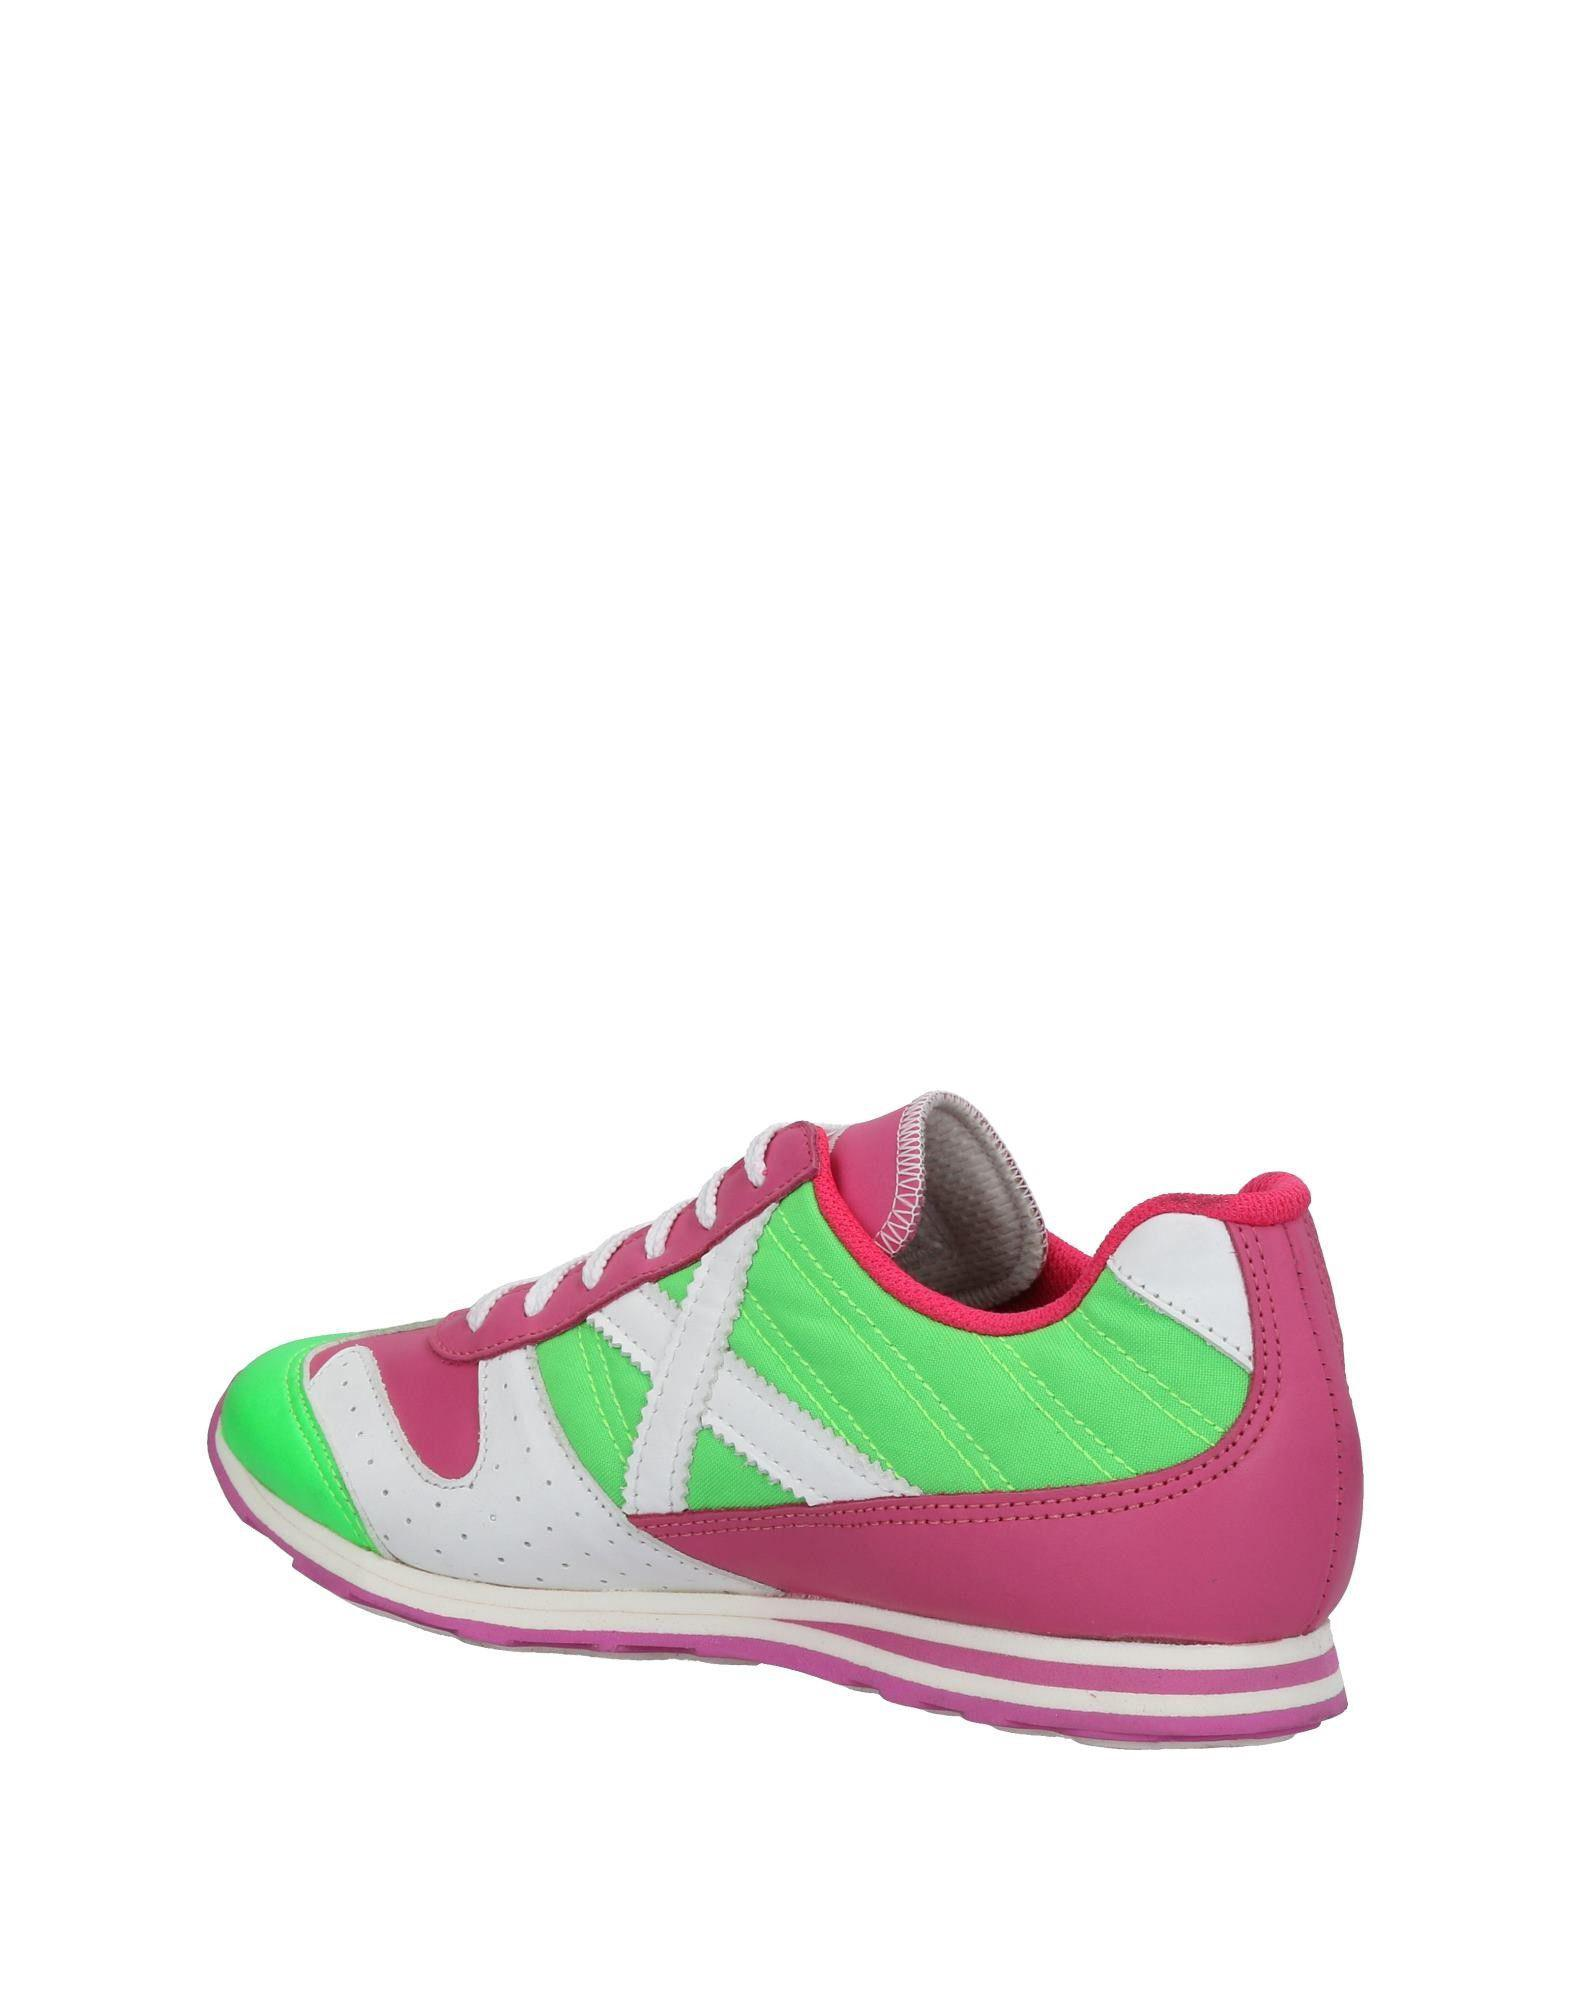 Munich Leather Low-tops & Sneakers in Pink